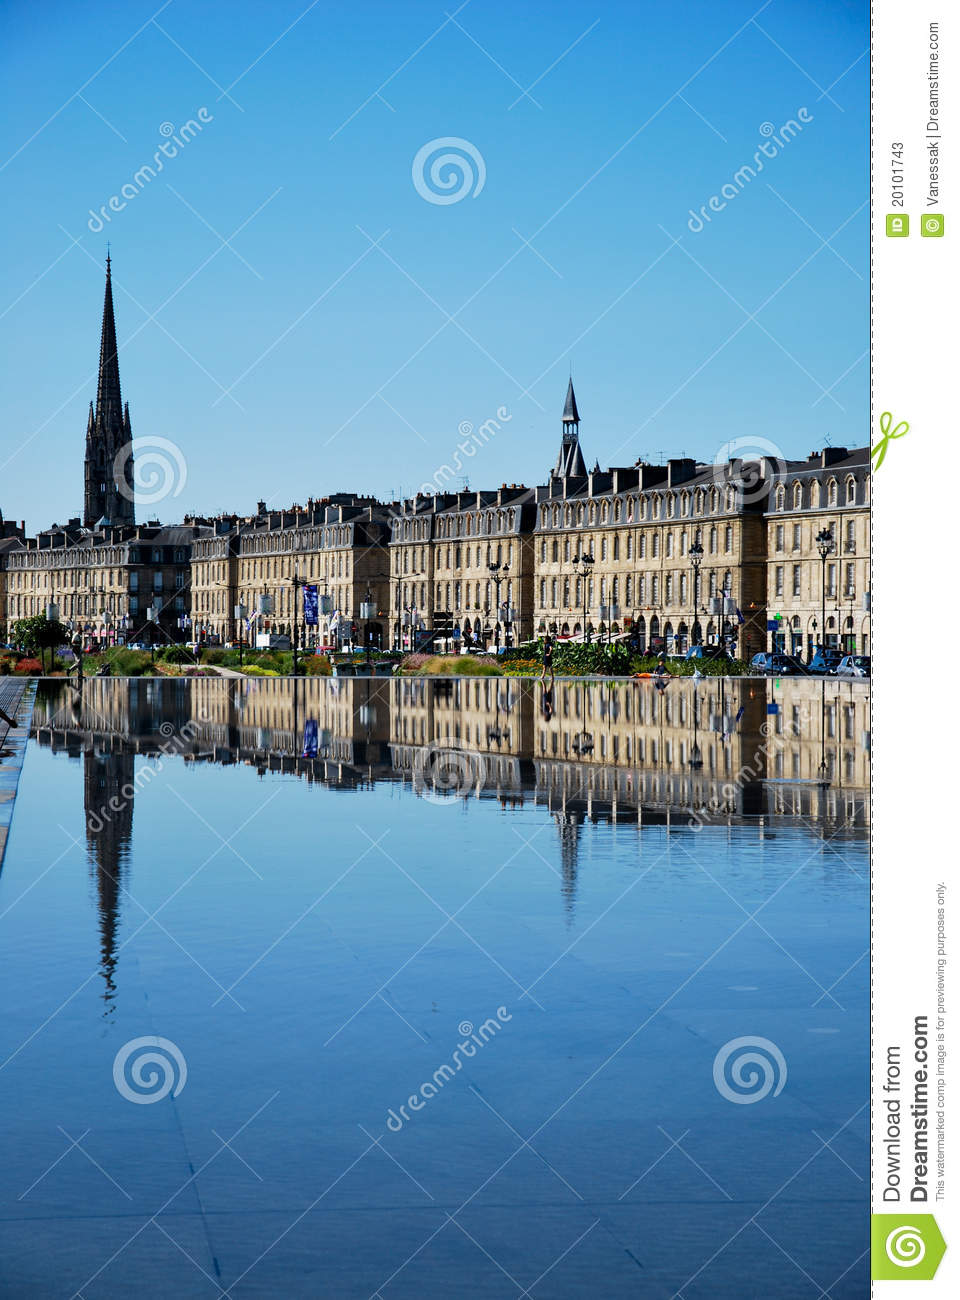 Miroir de bordeaux image stock image du place c l bre for Miroir bordeaux